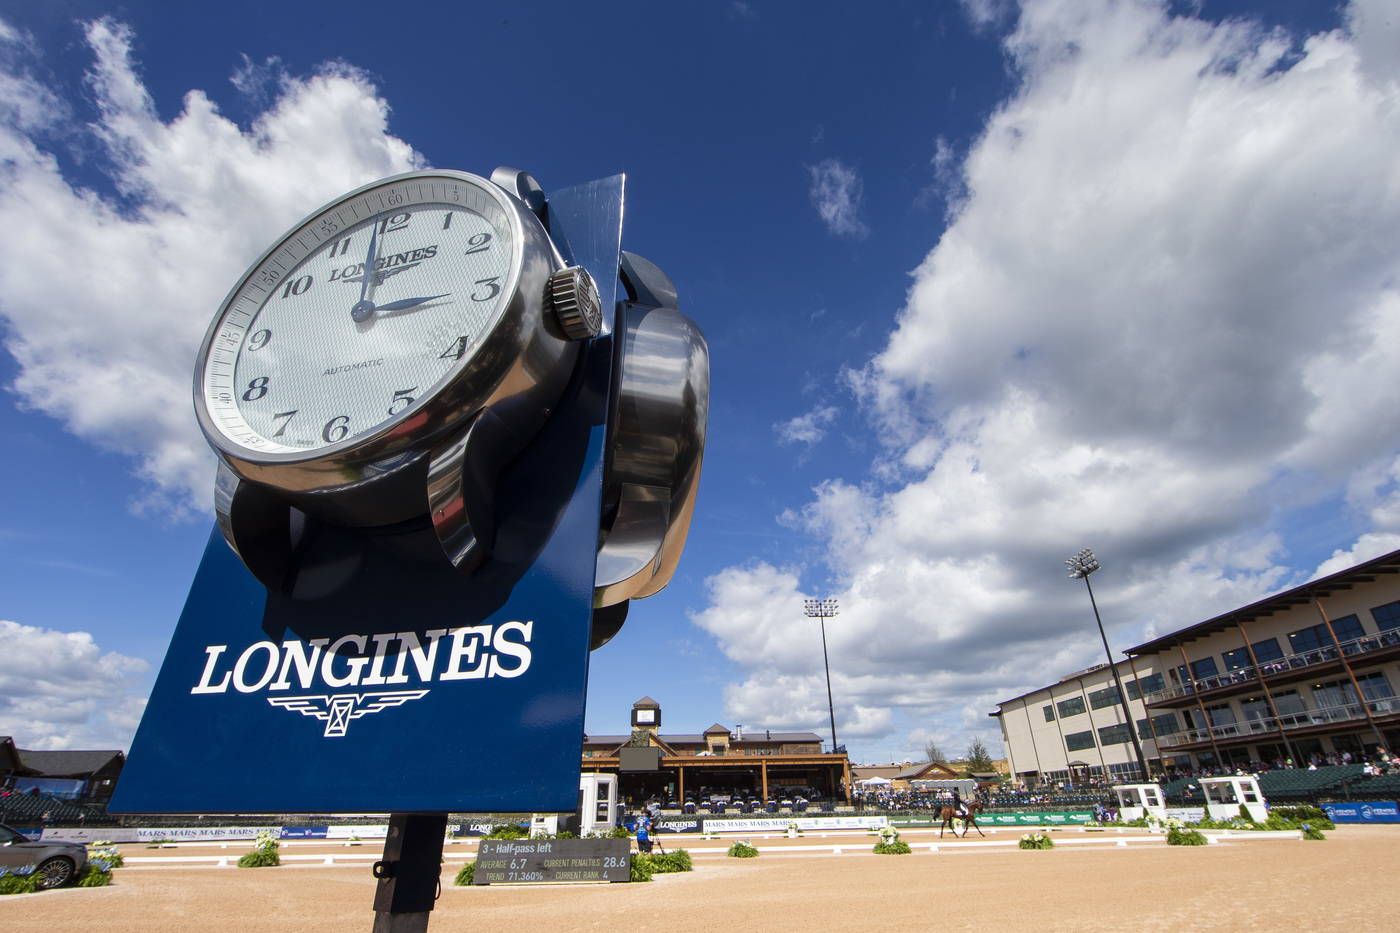 Longines Eventing Event: Performance at its peak during the first week of the  FEI World Equestrian GamesTM Tryon 2018 1